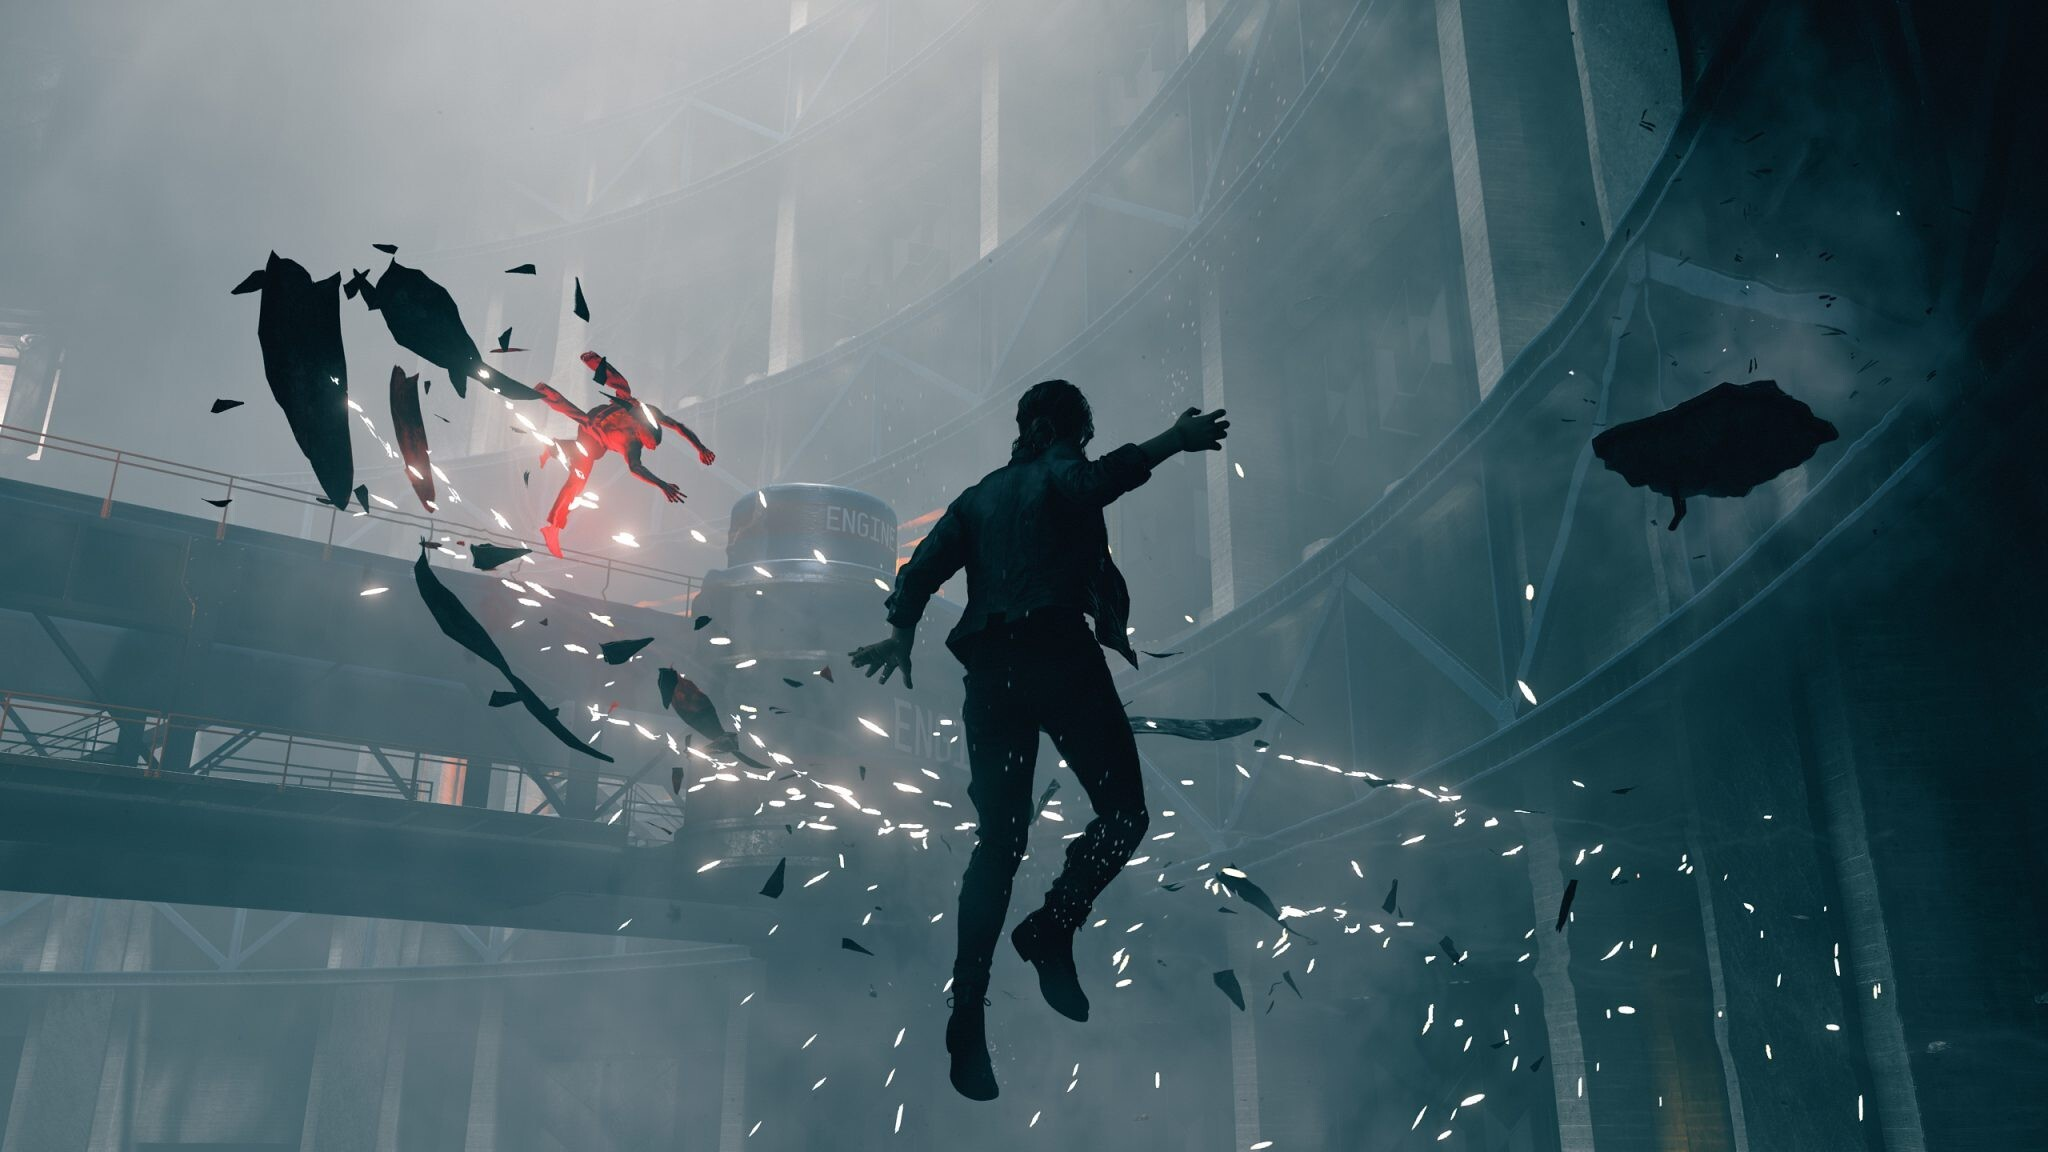 Control, Control Ultimate Edition, Control [Ultimate Edition], PlayStation 4, Xbox One, PS4, XONE, gameplay, features, release date, price, trailer, screenshots, 505 Games, Remedy Entertainment